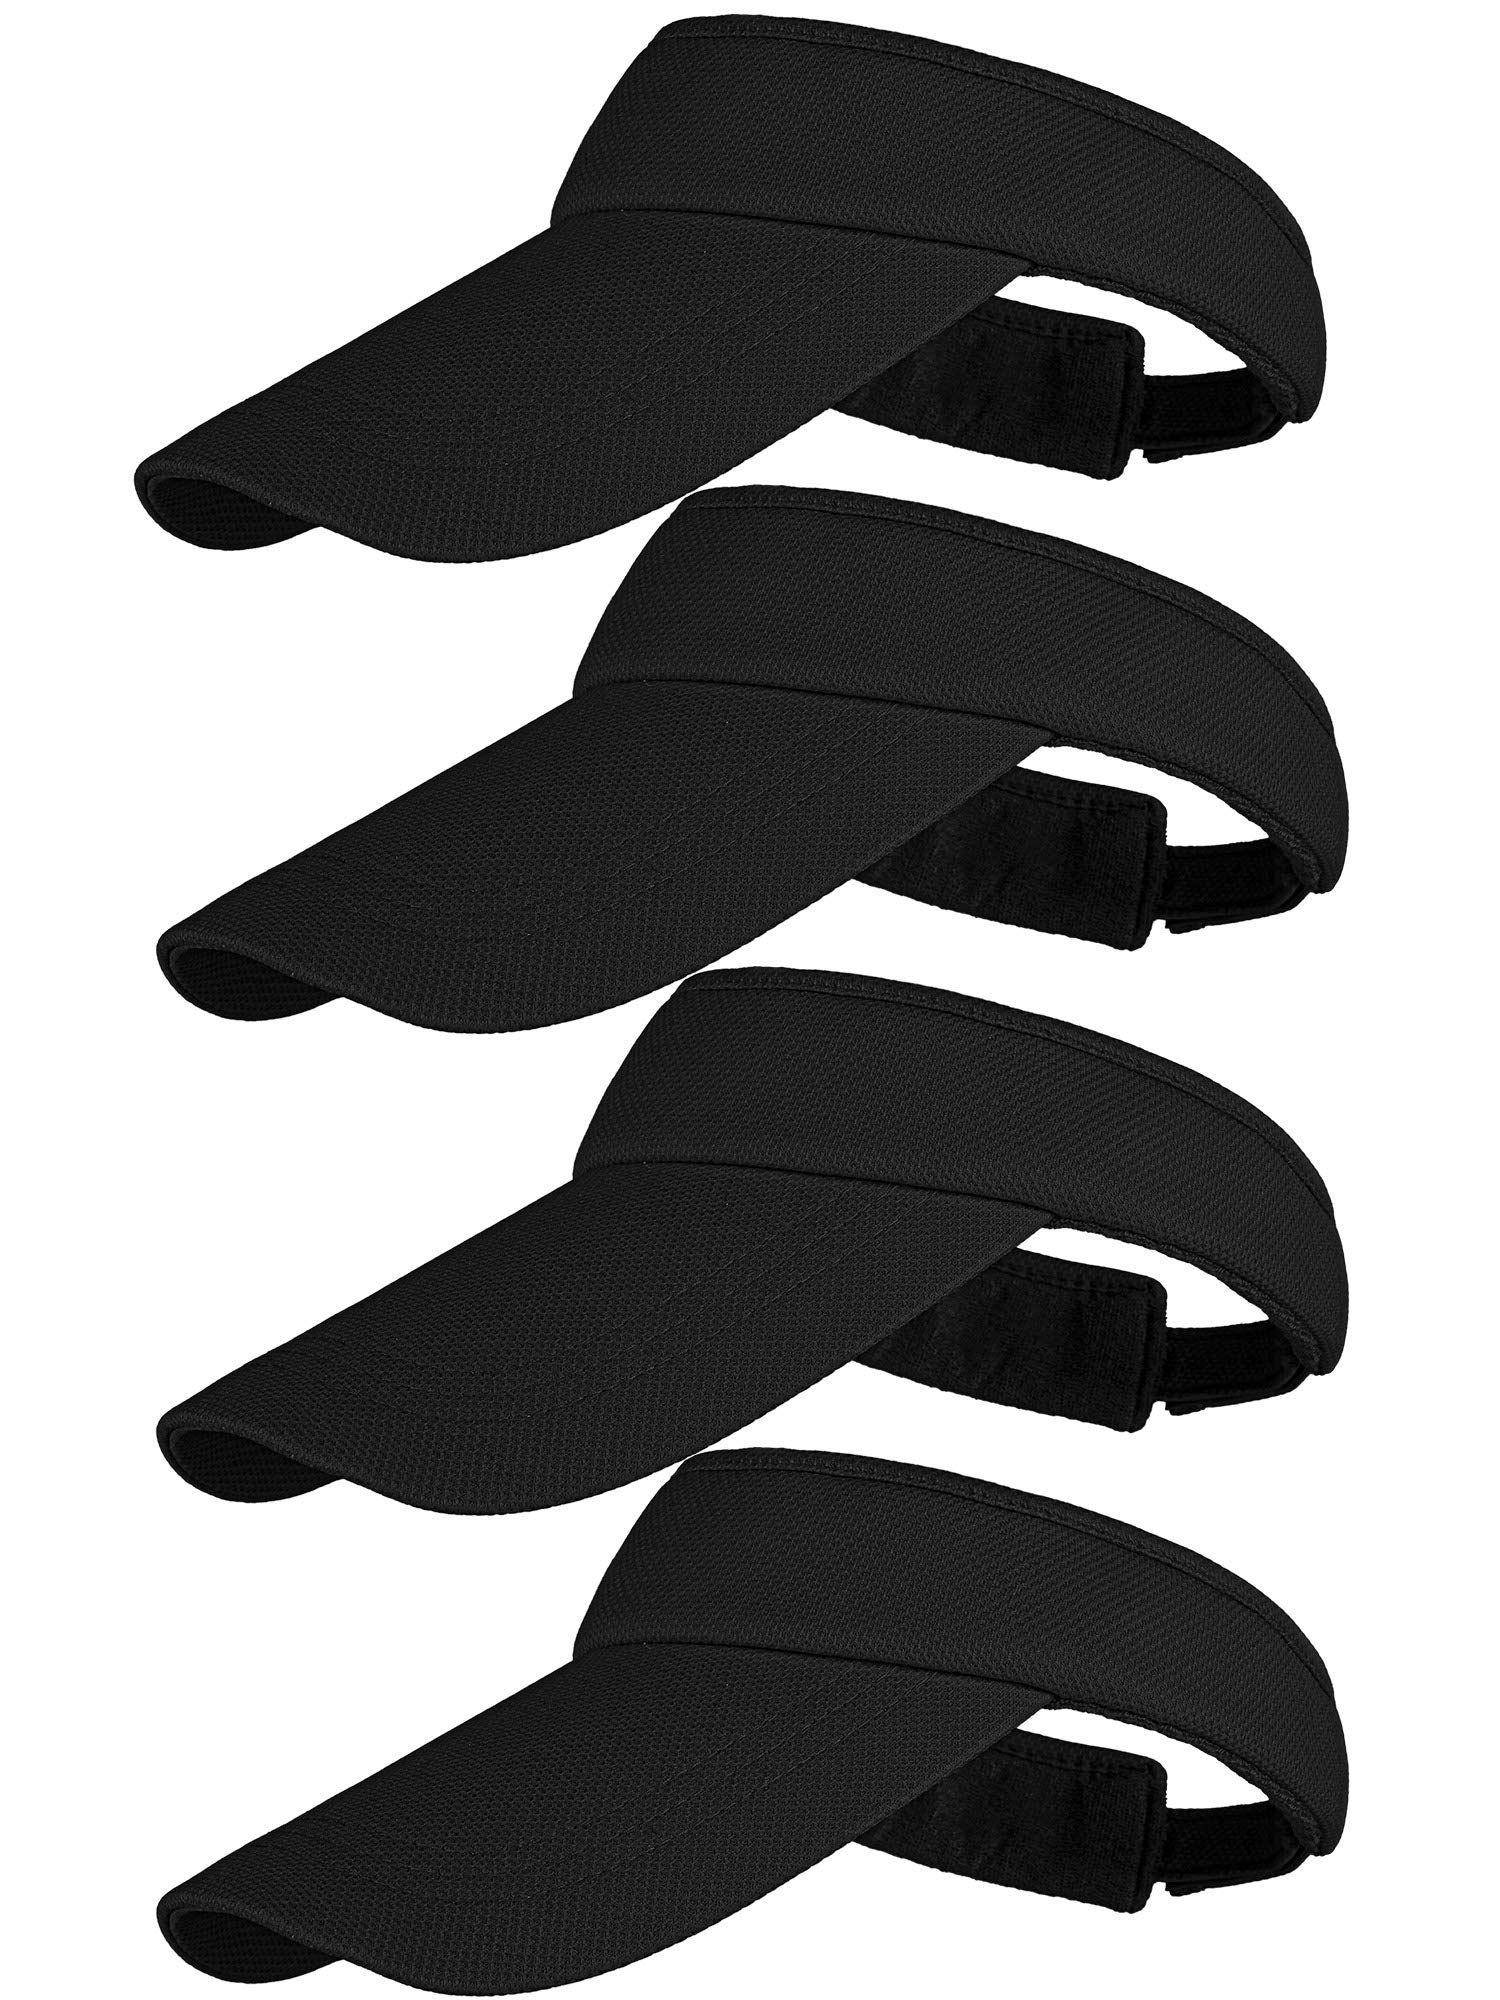 Cooraby 4 Pack Adjustable Sun Visors Outdoor Sport Sun Visors Hats with Long Brim for Men and Women